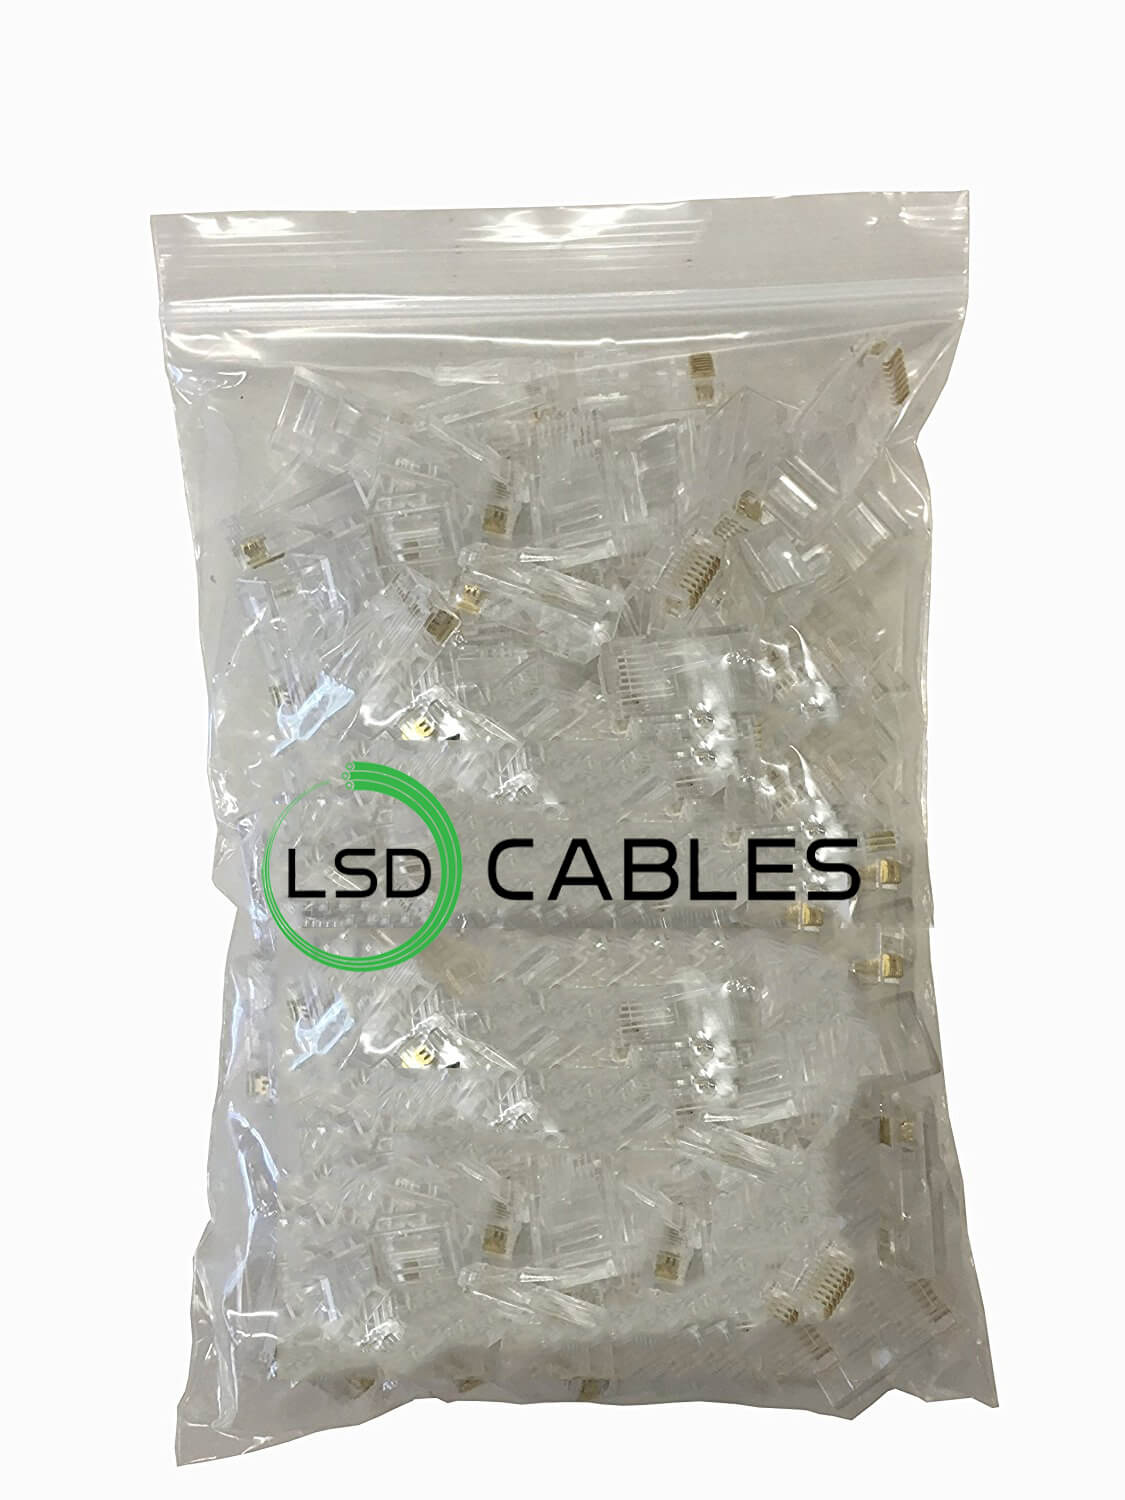 LSD CABLES RJ45 CONNECTOR CAT5ECAT6 Package in PE bag L T02 - RJ45 CONNECTOR CAT5E&CAT6 8P8C 6P6C L-T02